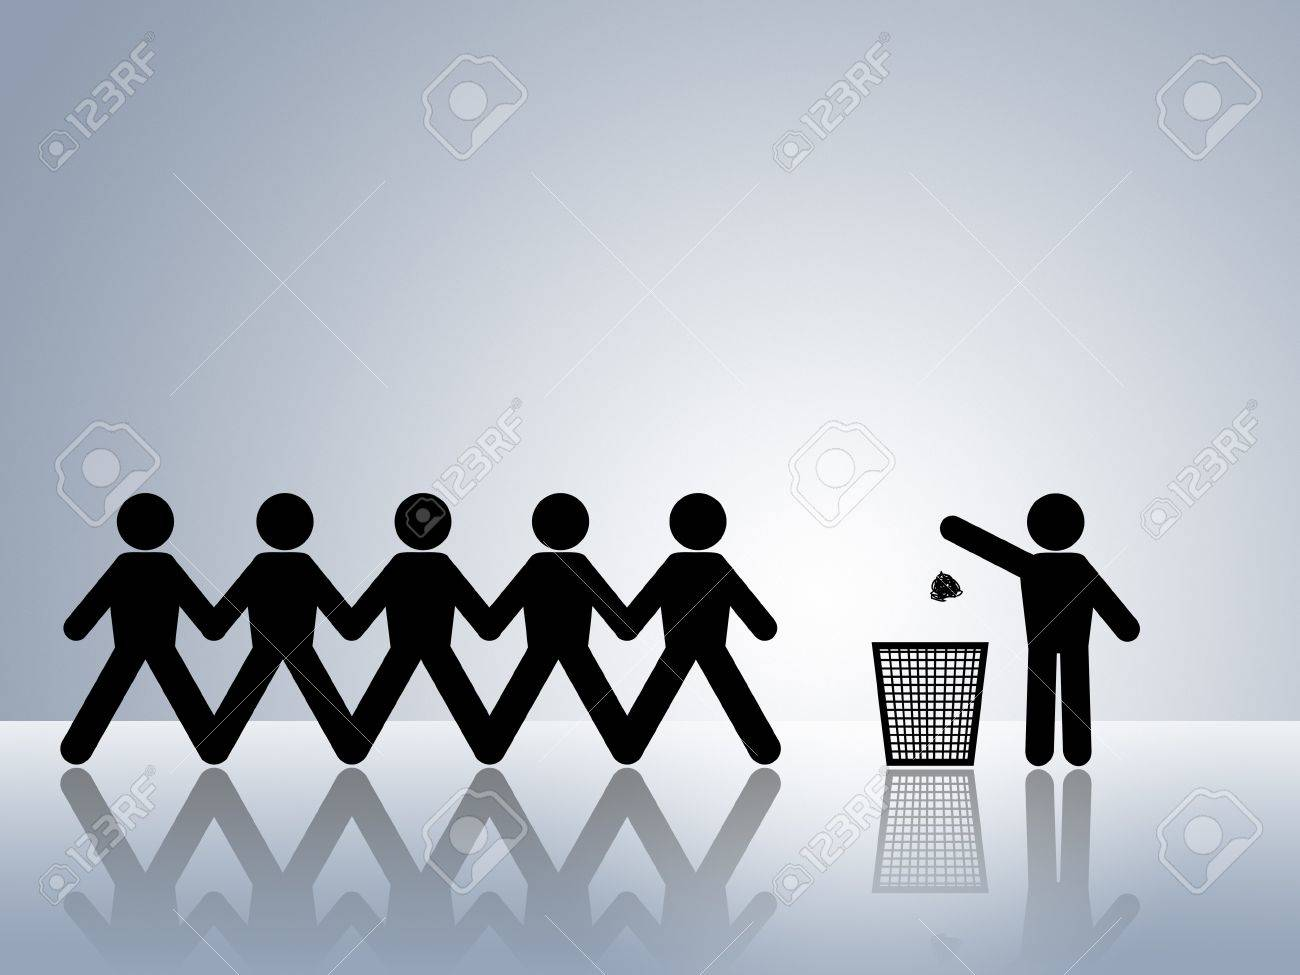 paper chain figures one tossing waste in a trash can concept for garbage disposal Stock Photo - 8558535